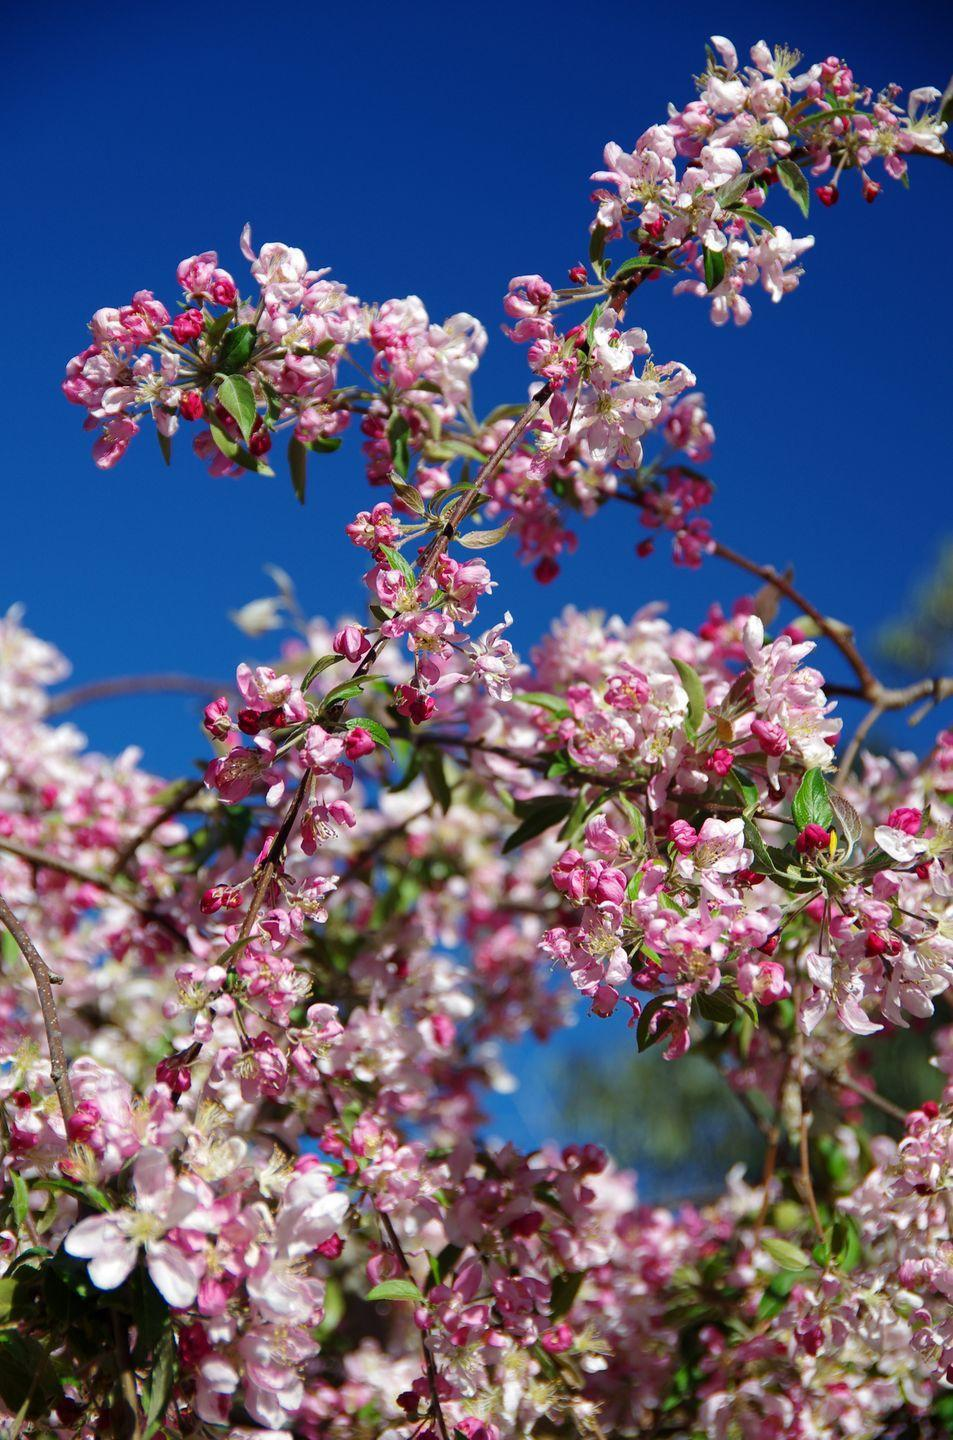 """<p>Considering their size and longevity, trees are very inexpensive and just a few will make a difference to the look of a garden. Try small trees like June berry, <a href=""""https://go.redirectingat.com?id=127X1599956&url=https%3A%2F%2Fwww.thompson-morgan.com%2Fp%2Famelanchier-lamarckii%2Ft58264TM&sref=https%3A%2F%2Fwww.redonline.co.uk%2Finteriors%2Feditors_choice%2Fg35933369%2Fgarden-ideas-on-a-budget%2F"""" rel=""""nofollow noopener"""" target=""""_blank"""" data-ylk=""""slk:Amelanchier lamarckii"""" class=""""link rapid-noclick-resp"""">Amelanchier lamarckii</a>, an ornamental cherry like <a href=""""https://go.redirectingat.com?id=127X1599956&url=https%3A%2F%2Fwww.thompson-morgan.com%2Fp%2Fprunus-x-incam-okam%2Ftka3398TM&sref=https%3A%2F%2Fwww.redonline.co.uk%2Finteriors%2Feditors_choice%2Fg35933369%2Fgarden-ideas-on-a-budget%2F"""" rel=""""nofollow noopener"""" target=""""_blank"""" data-ylk=""""slk:Prunus × incam 'Okamé'"""" class=""""link rapid-noclick-resp"""">Prunus × incam 'Okamé'</a>, or a crab apple. Three should be plenty for an average sized garden. </p>"""